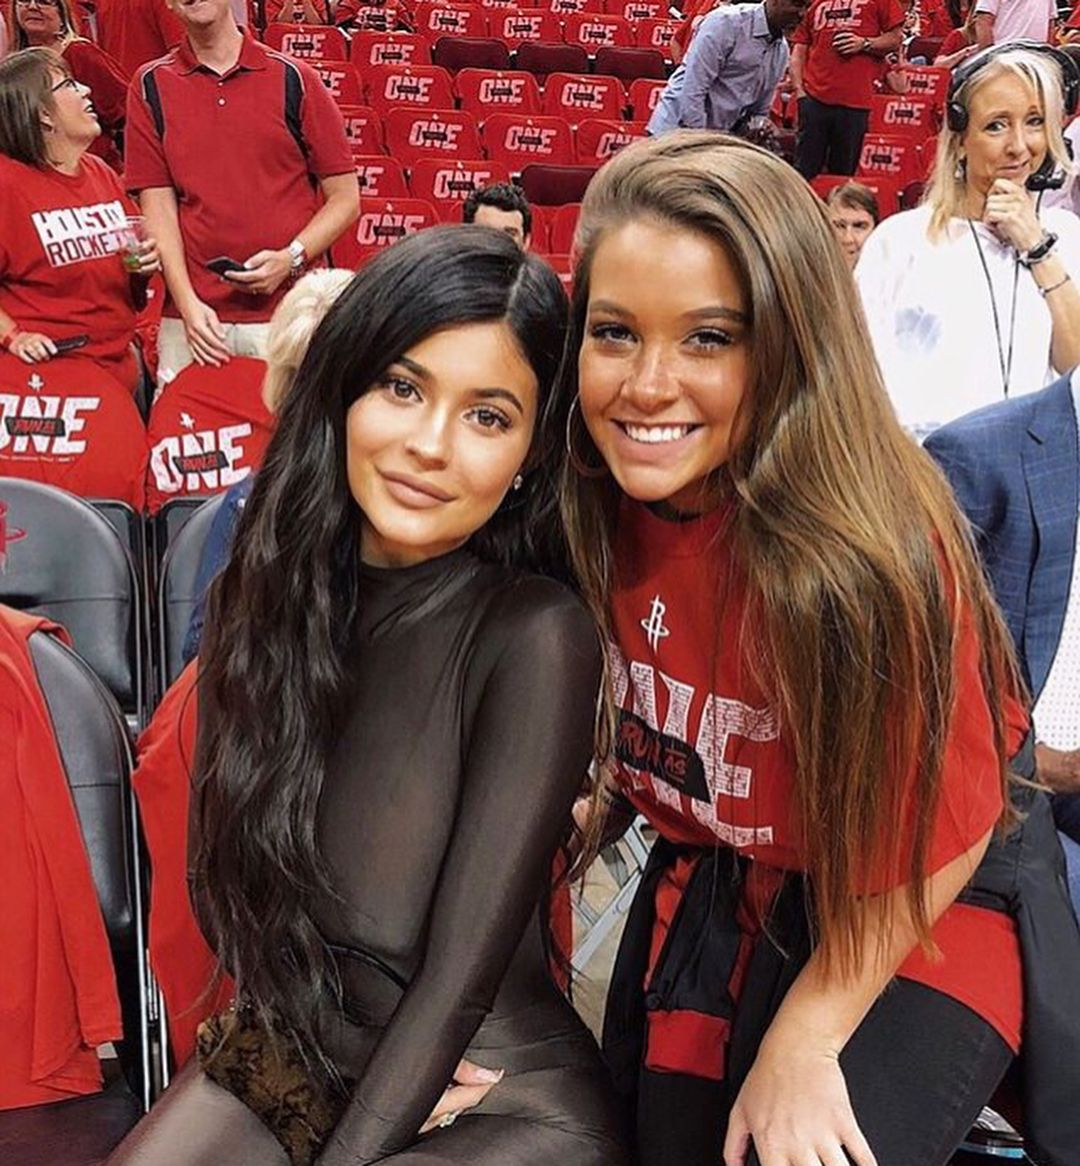 Kylie And Travis At A Basketball Game Kyliejenner Kyliejenner Travisscott Travisscott Kylie Jenner Kylie Jenner Style Kylie > travis scott height, weight, age, body statistics. kylie jenner kylie jenner style